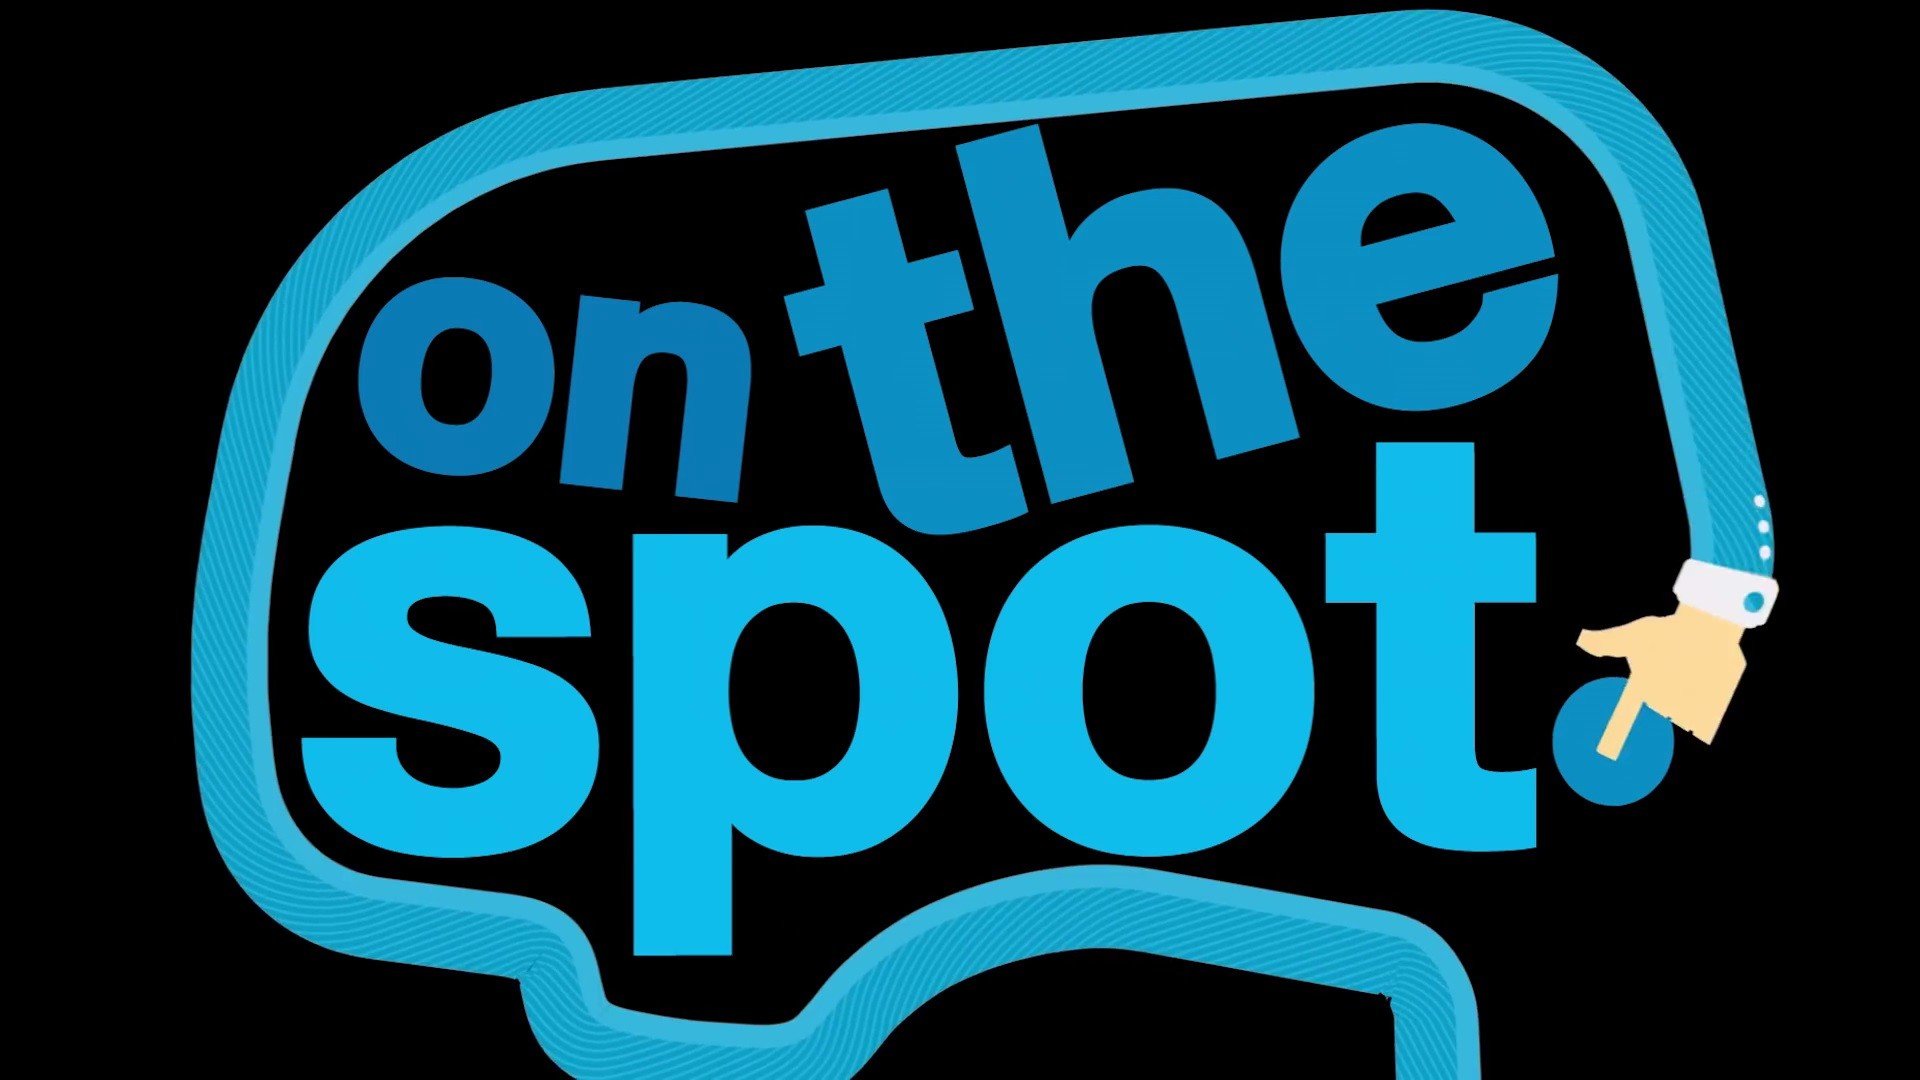 Res: 1920x1080, On The Spot updated logo.jpg